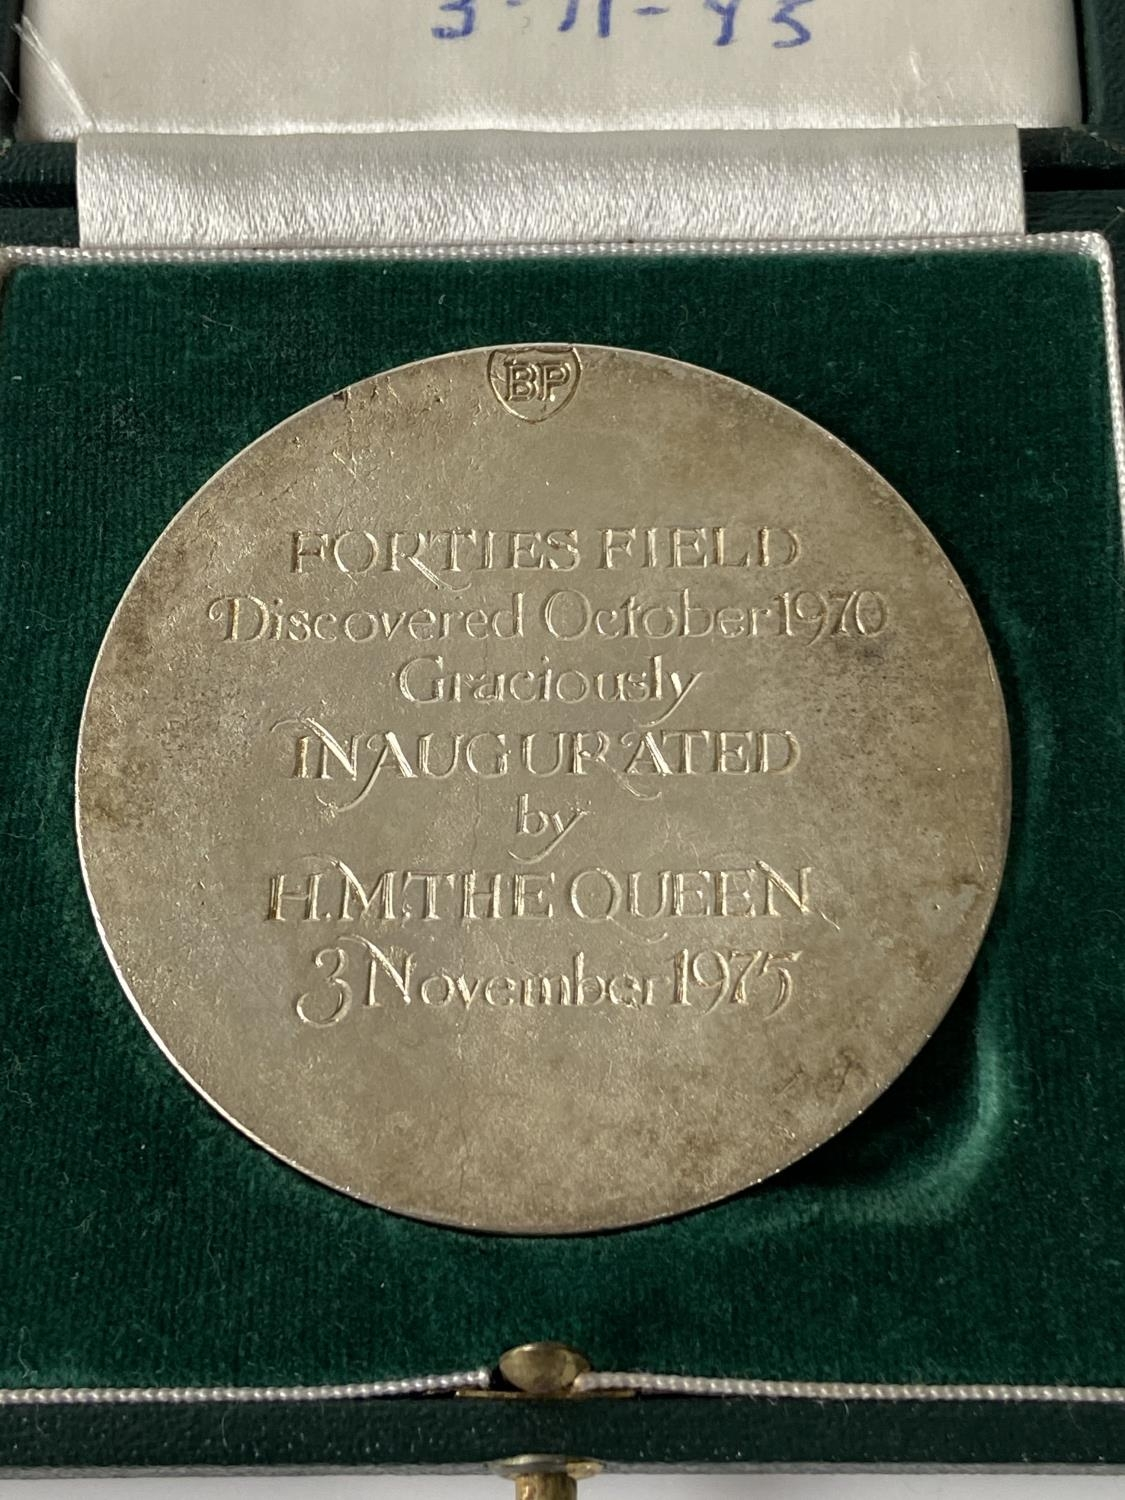 A 1975 commemorative medal for BP Forties Field oil field opening, comes with case, [diameter 6cm] - Image 3 of 6